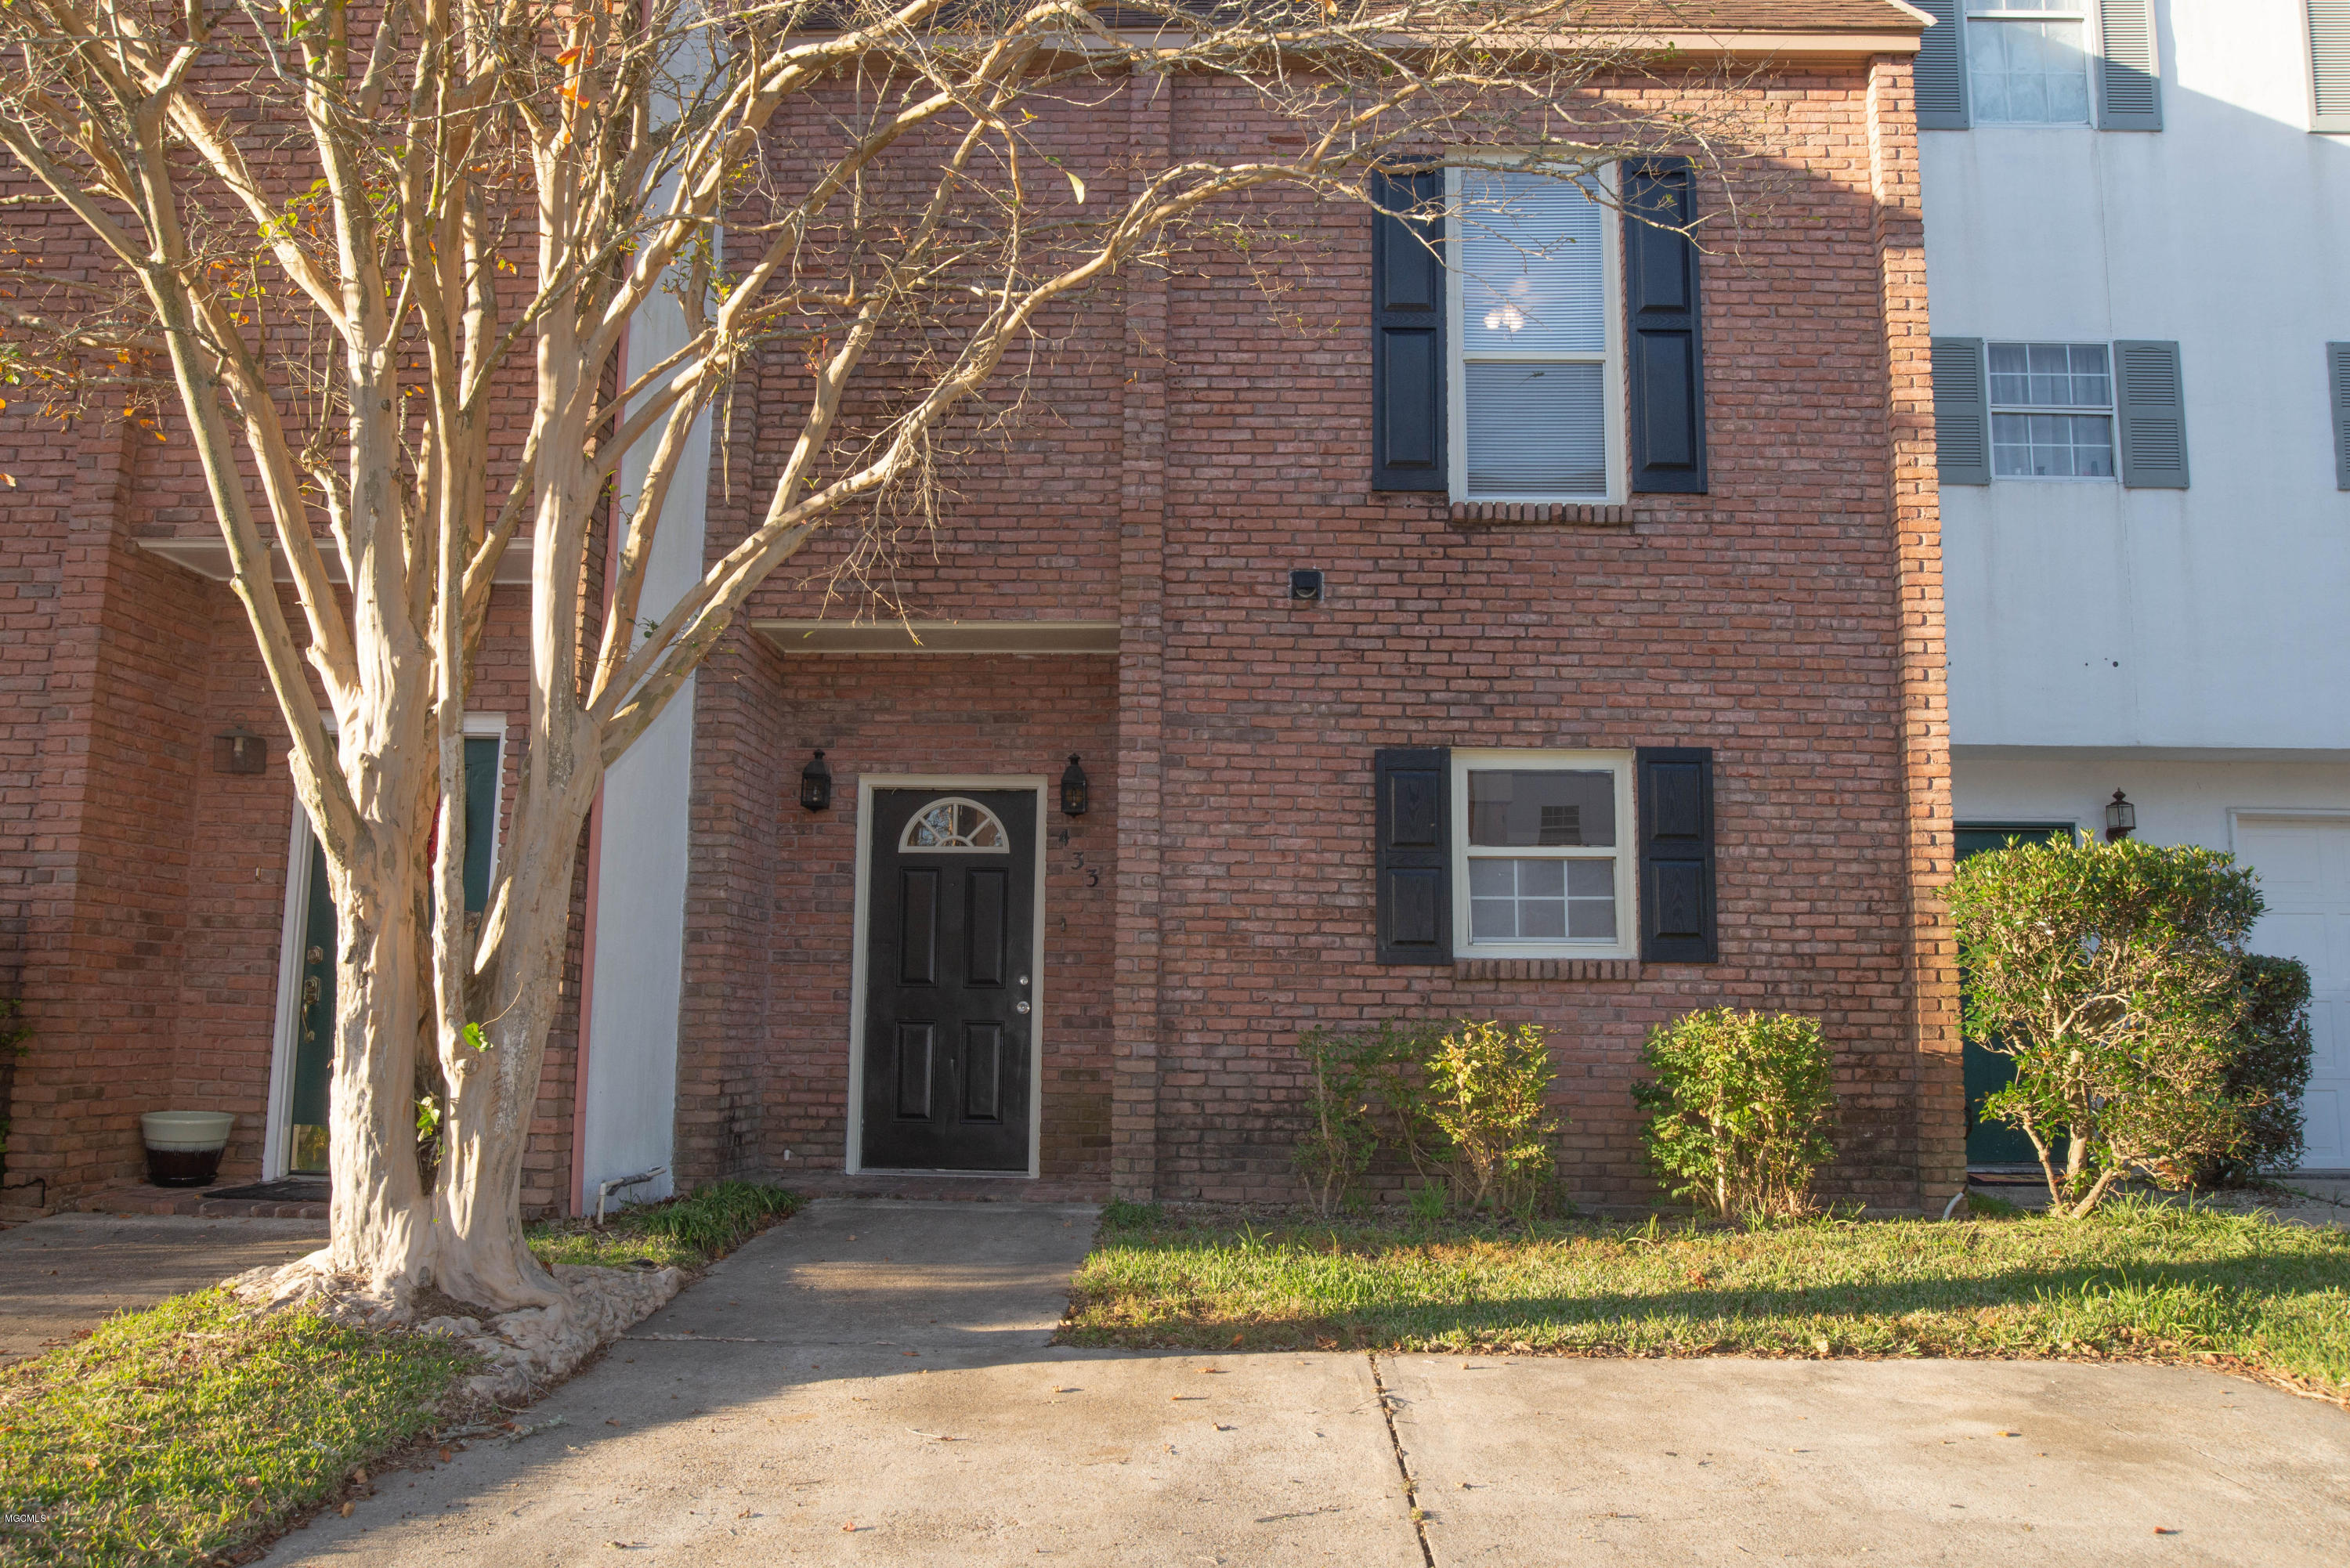 433 San Souci Dr, Gulfport, Mississippi 39507, 3 Bedrooms Bedrooms, ,3 BathroomsBathrooms,Single-family,For Sale,San Souci,341711